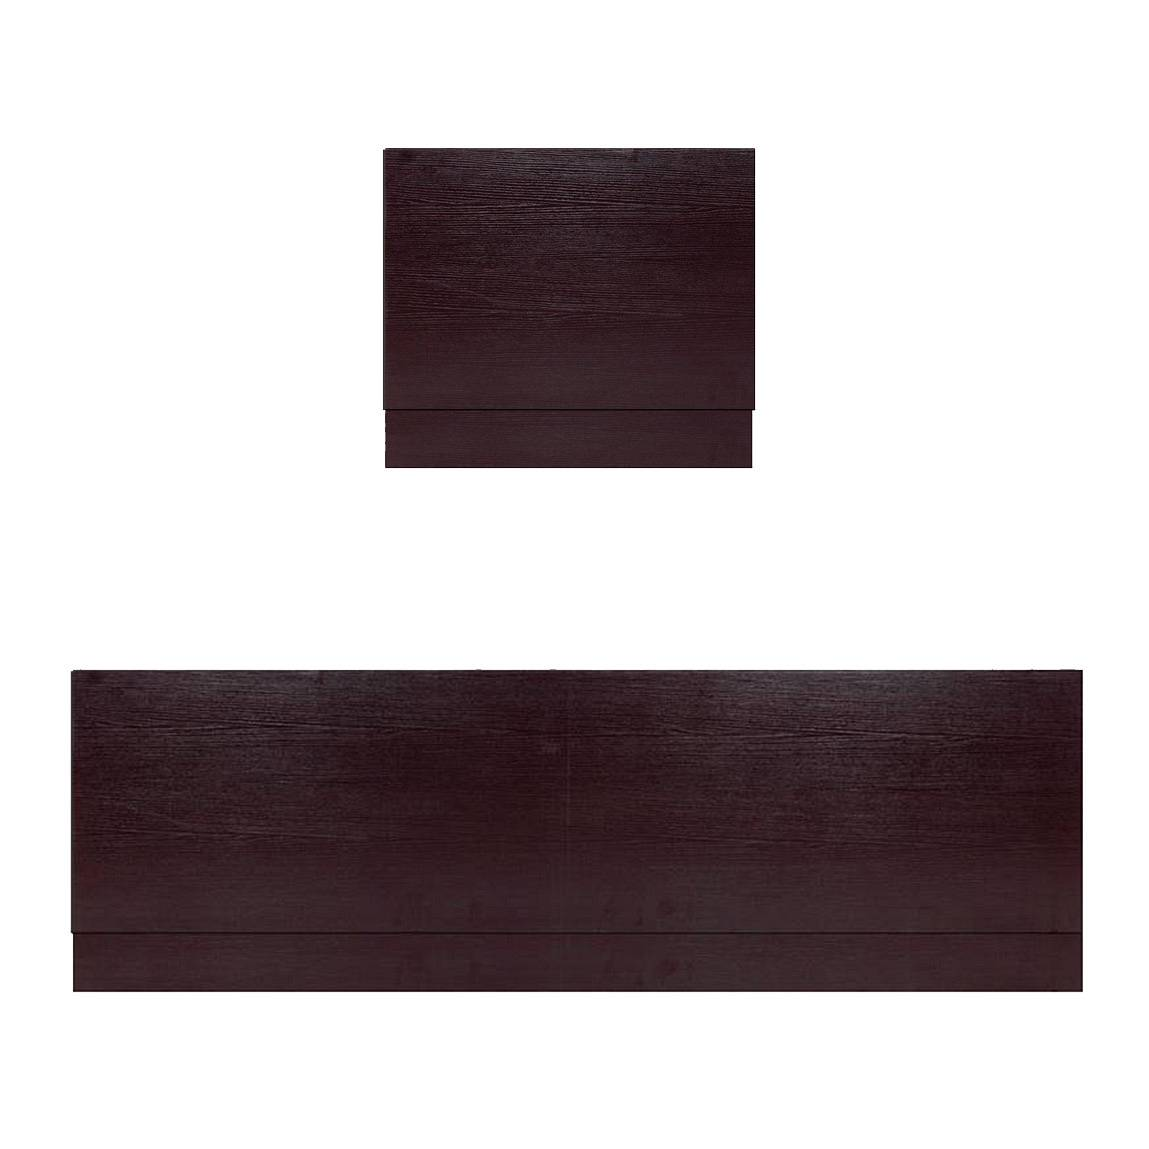 Image of Wenge Effect Straight Bath Panel Pack 1800 x 800